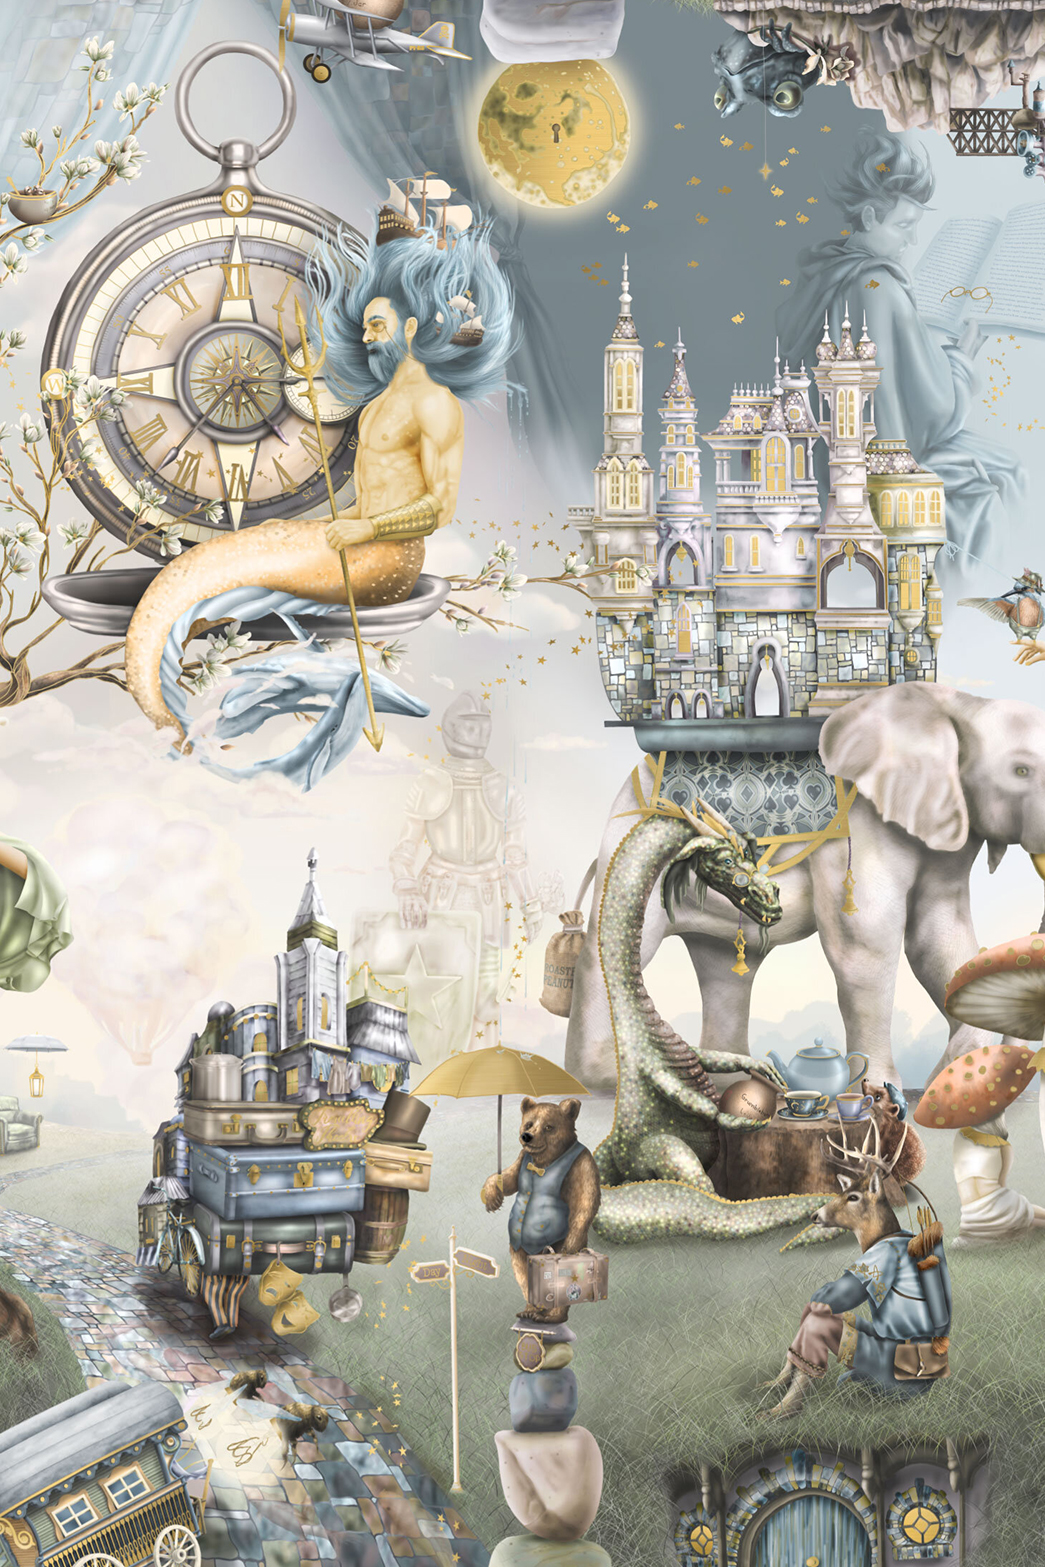 This is a boys fairytale woodland forest wallpaper wall mural design from Australia. It fetaures story book illustrations suchs as a male mermaid, merman King Triton, castle, knight, dragon, elephant, bear, deer, frog, night sky, moon, hot air balloons, plane. In colours of sage green, steel blue, gold, grey, blue, orange.